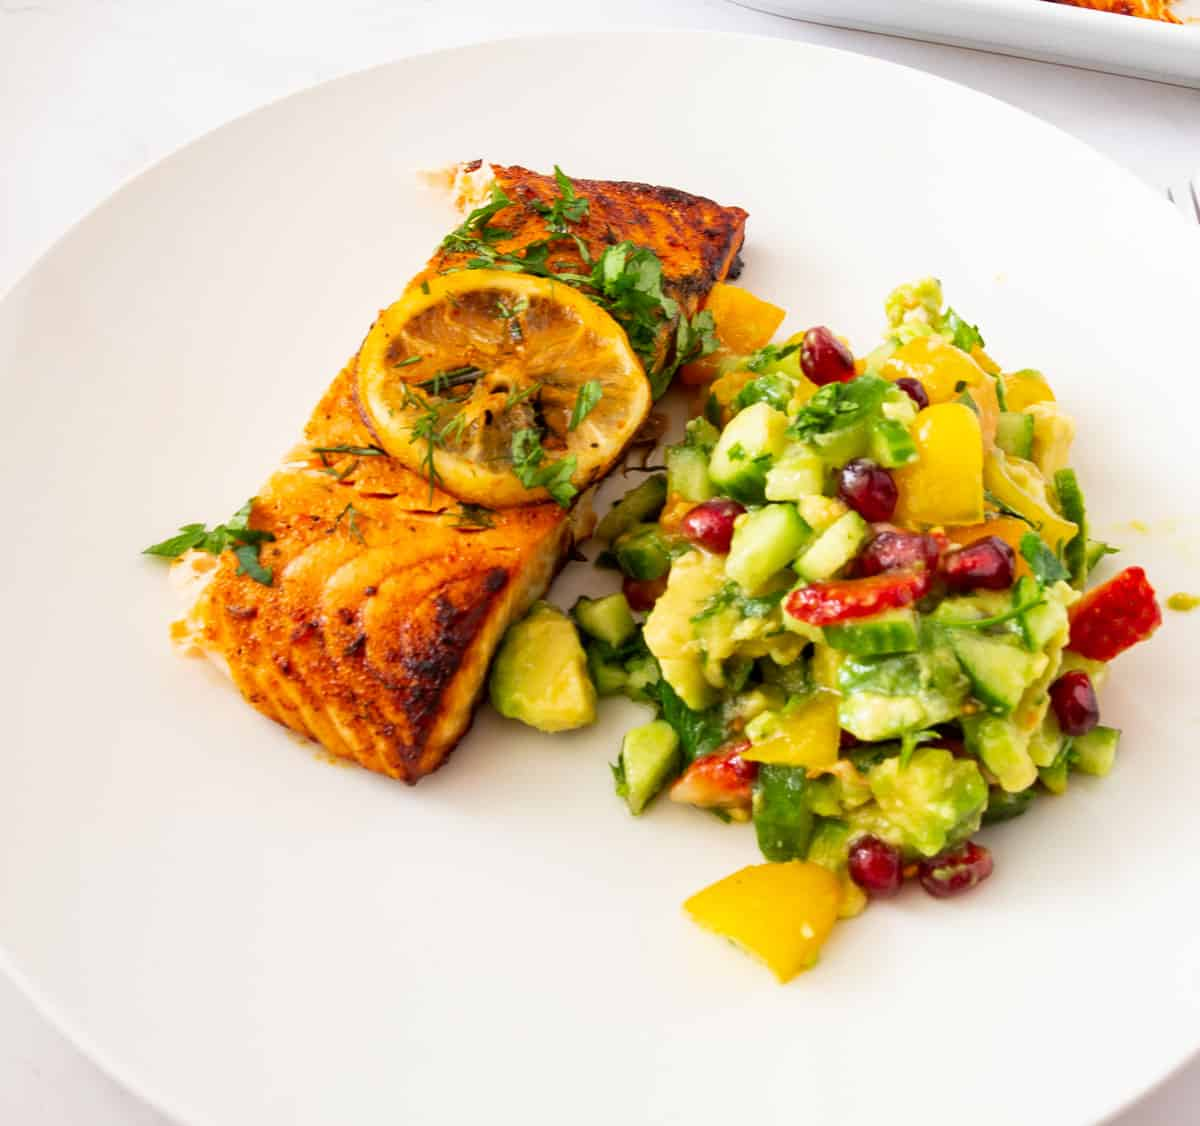 A white plate with salmon and avocado salad.